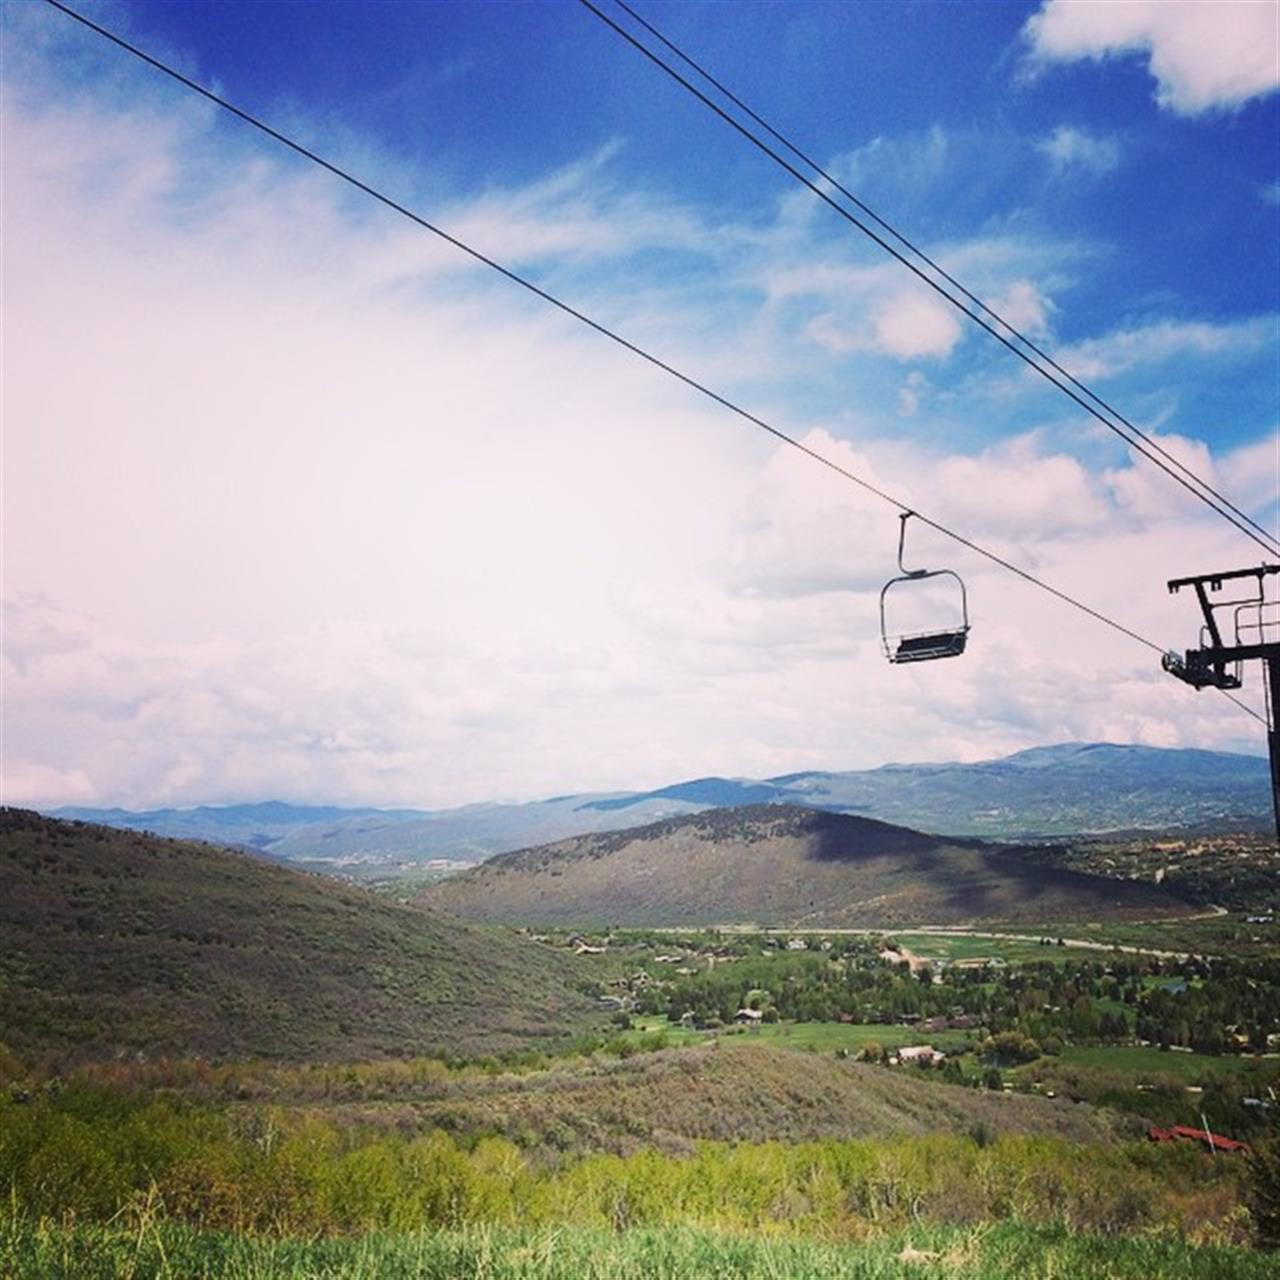 The sun came out to play today @pcski! #parkcity #chairlift #green #leadingrelocal #lovewhereyoulive #slc